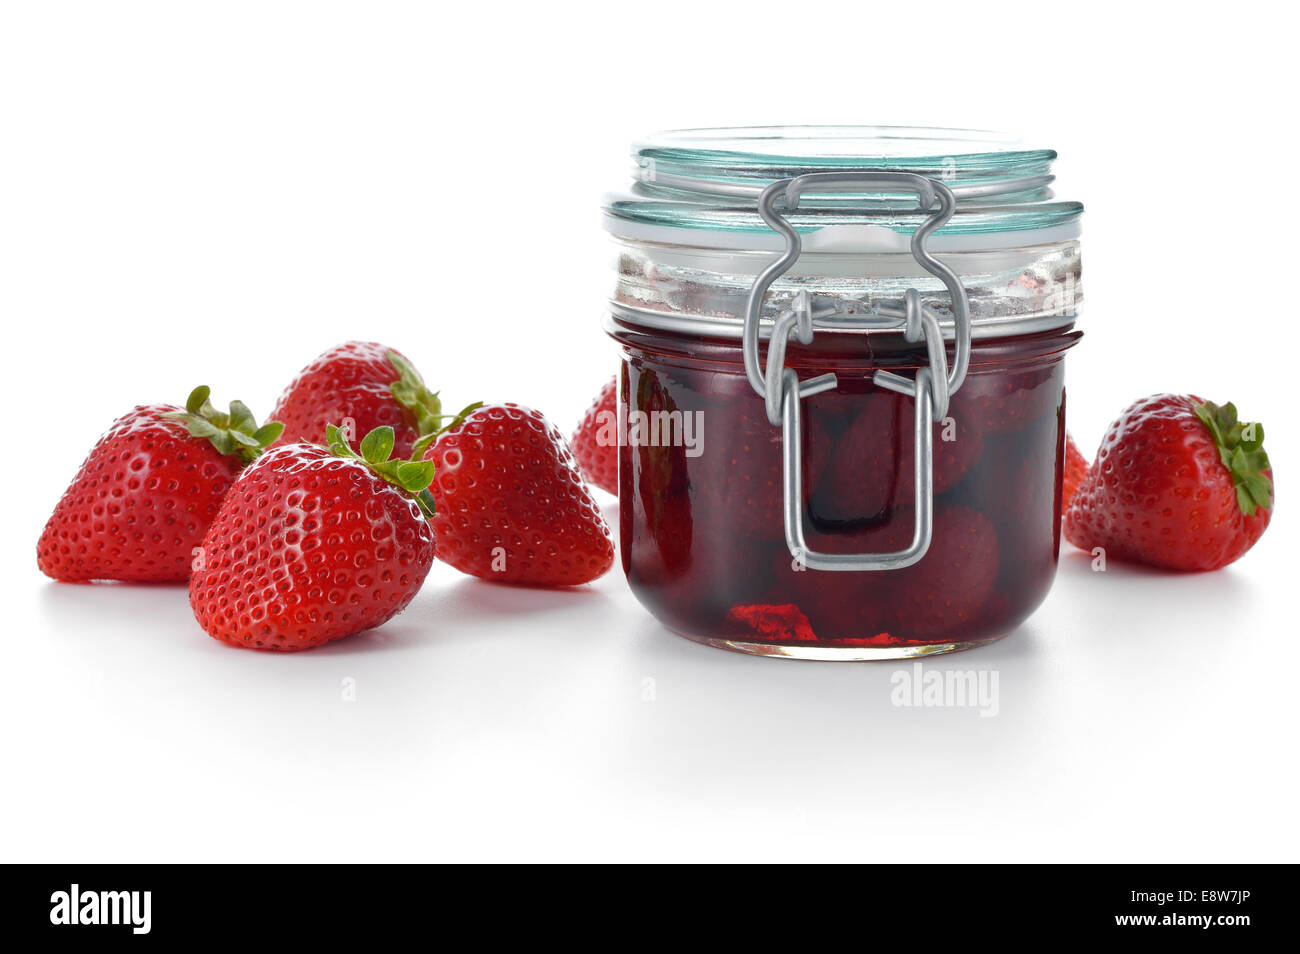 Strawberry jam or confiture and fresh strawberries isolated on white. Sweet red preserve. - Stock Image